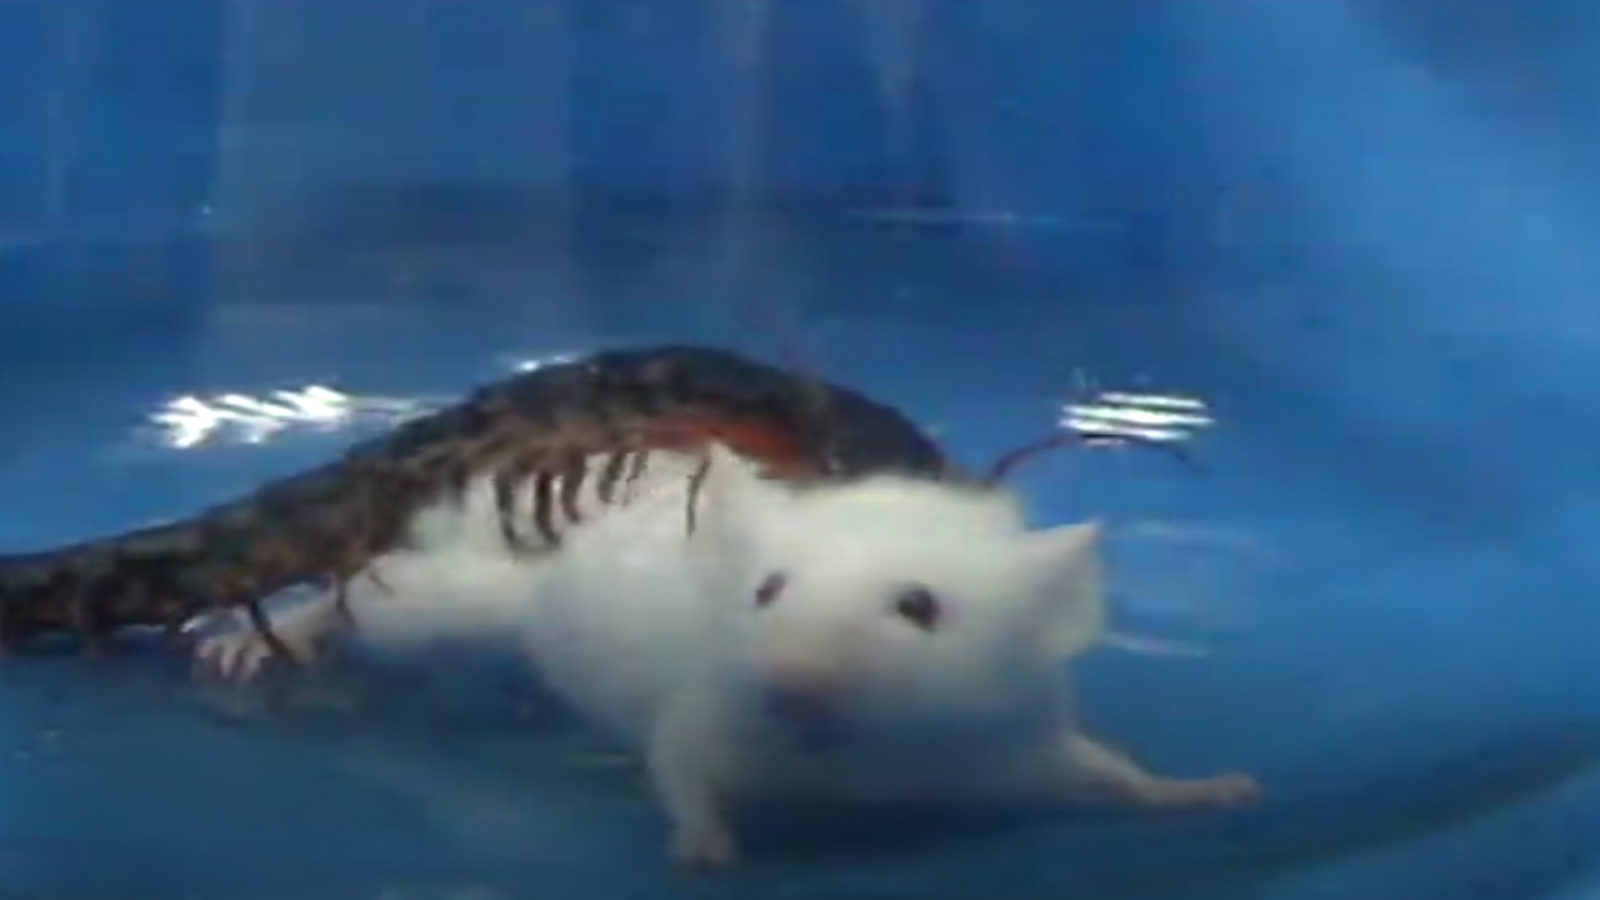 watch-centipede-rapidly-attack-kunming-mouse